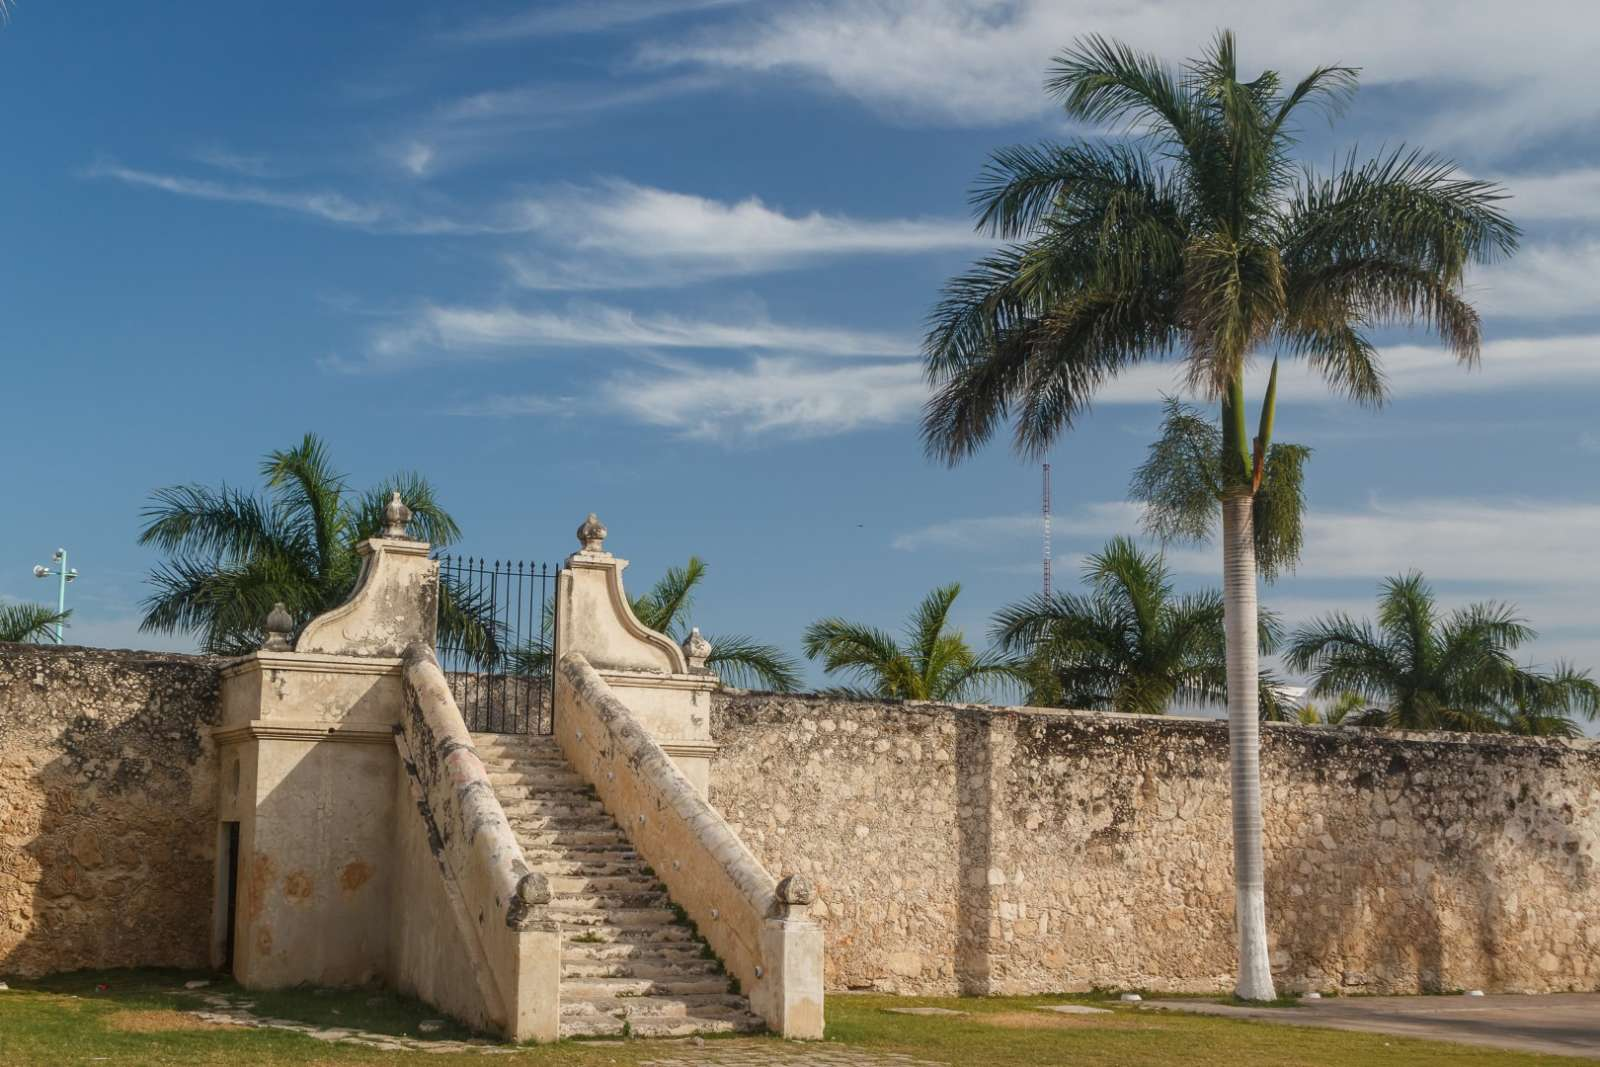 Steps leading up to old city wall in Campeche Mexico